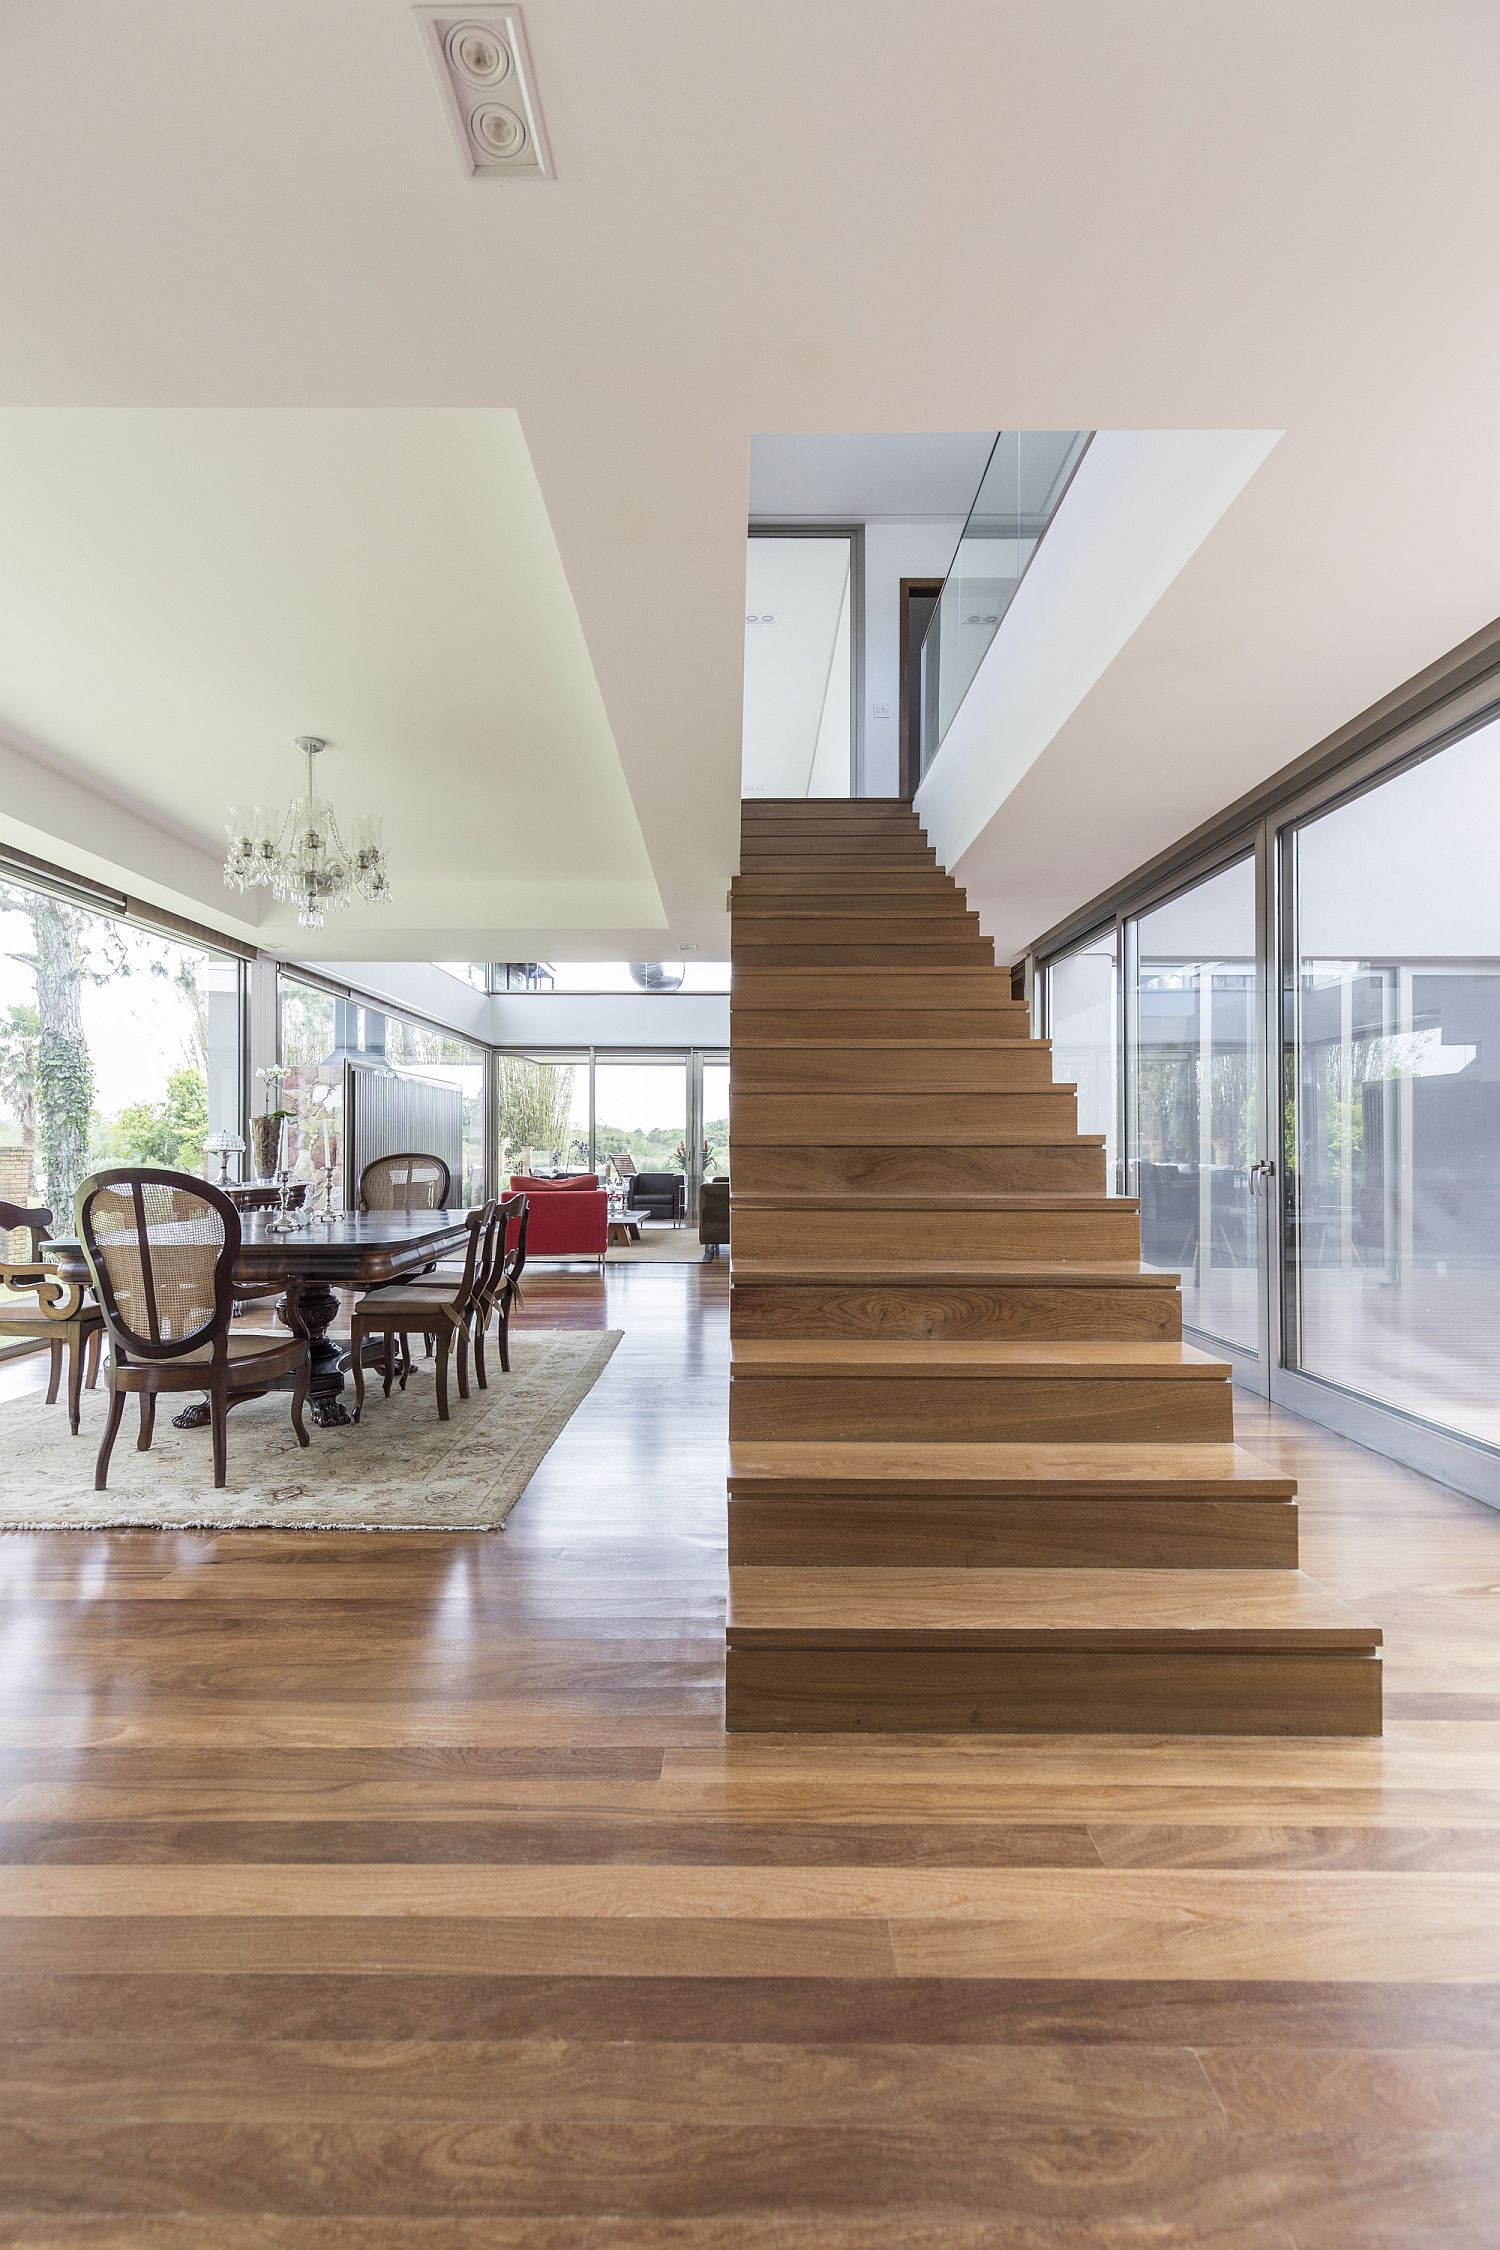 Ingenious staircase design also brings natural light into the lower level of the home